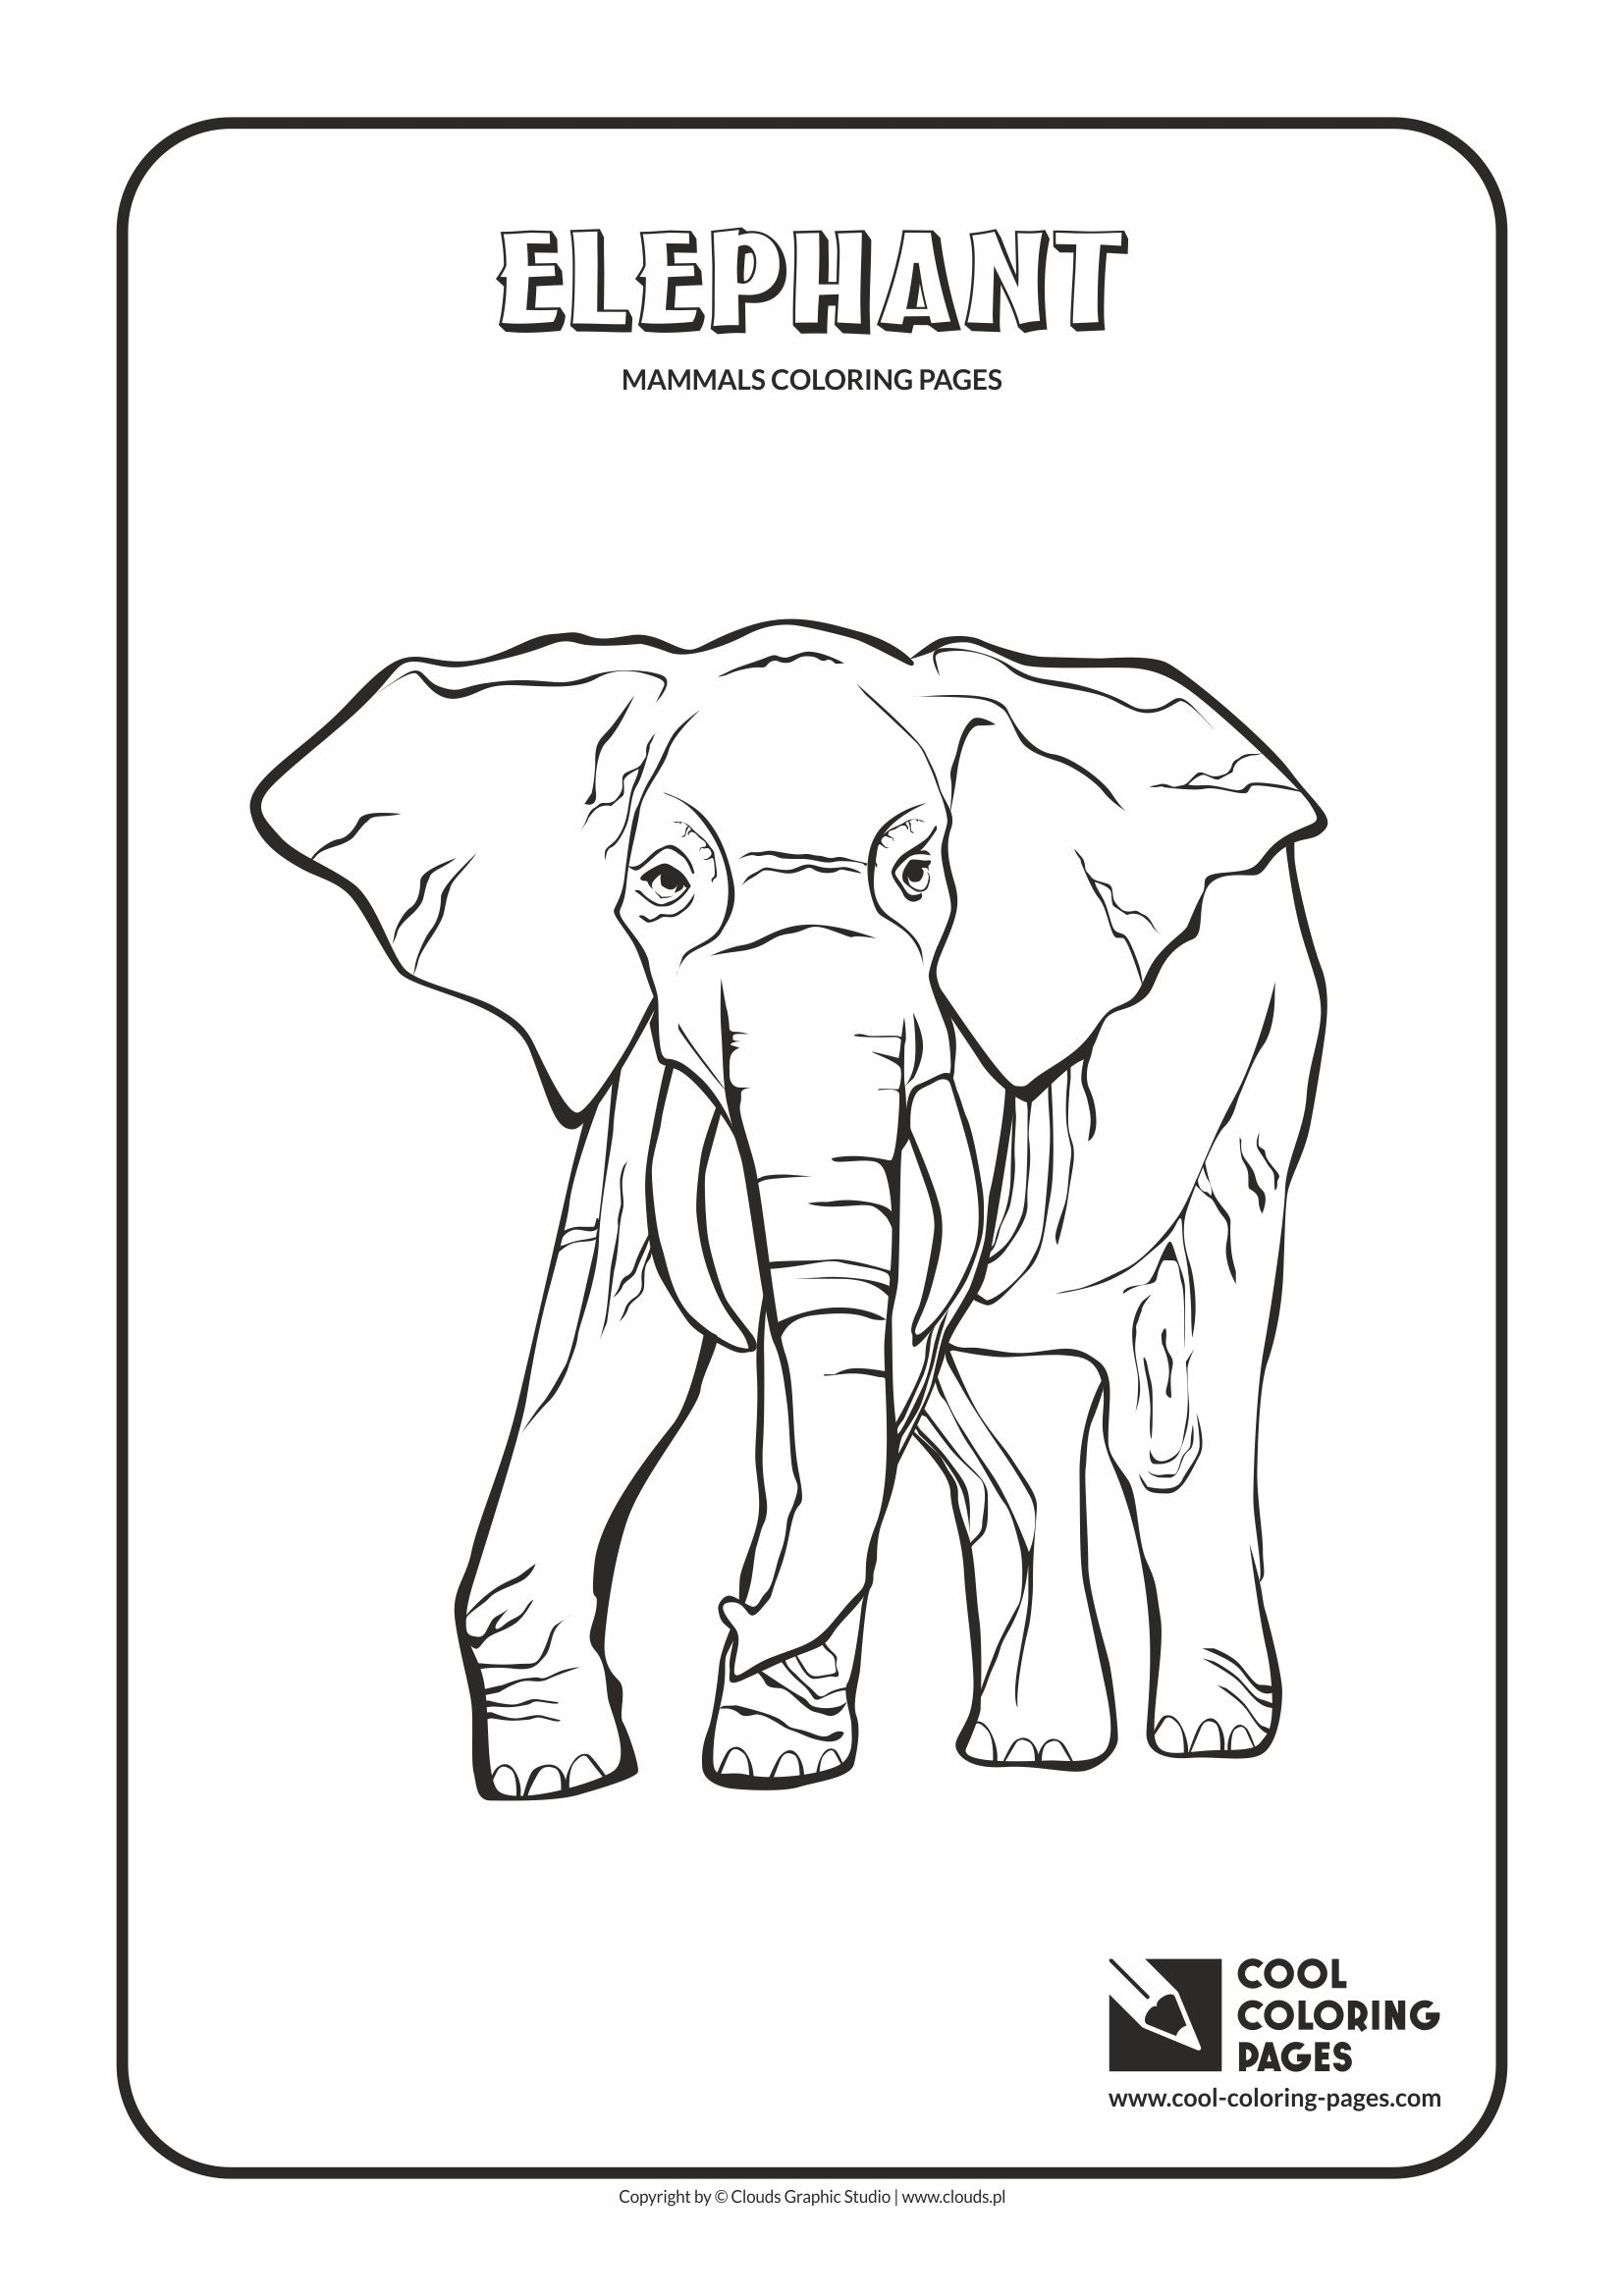 cool coloring pages animals mammals coloring page with elephant - Cool Coloring Sheets To Print Out